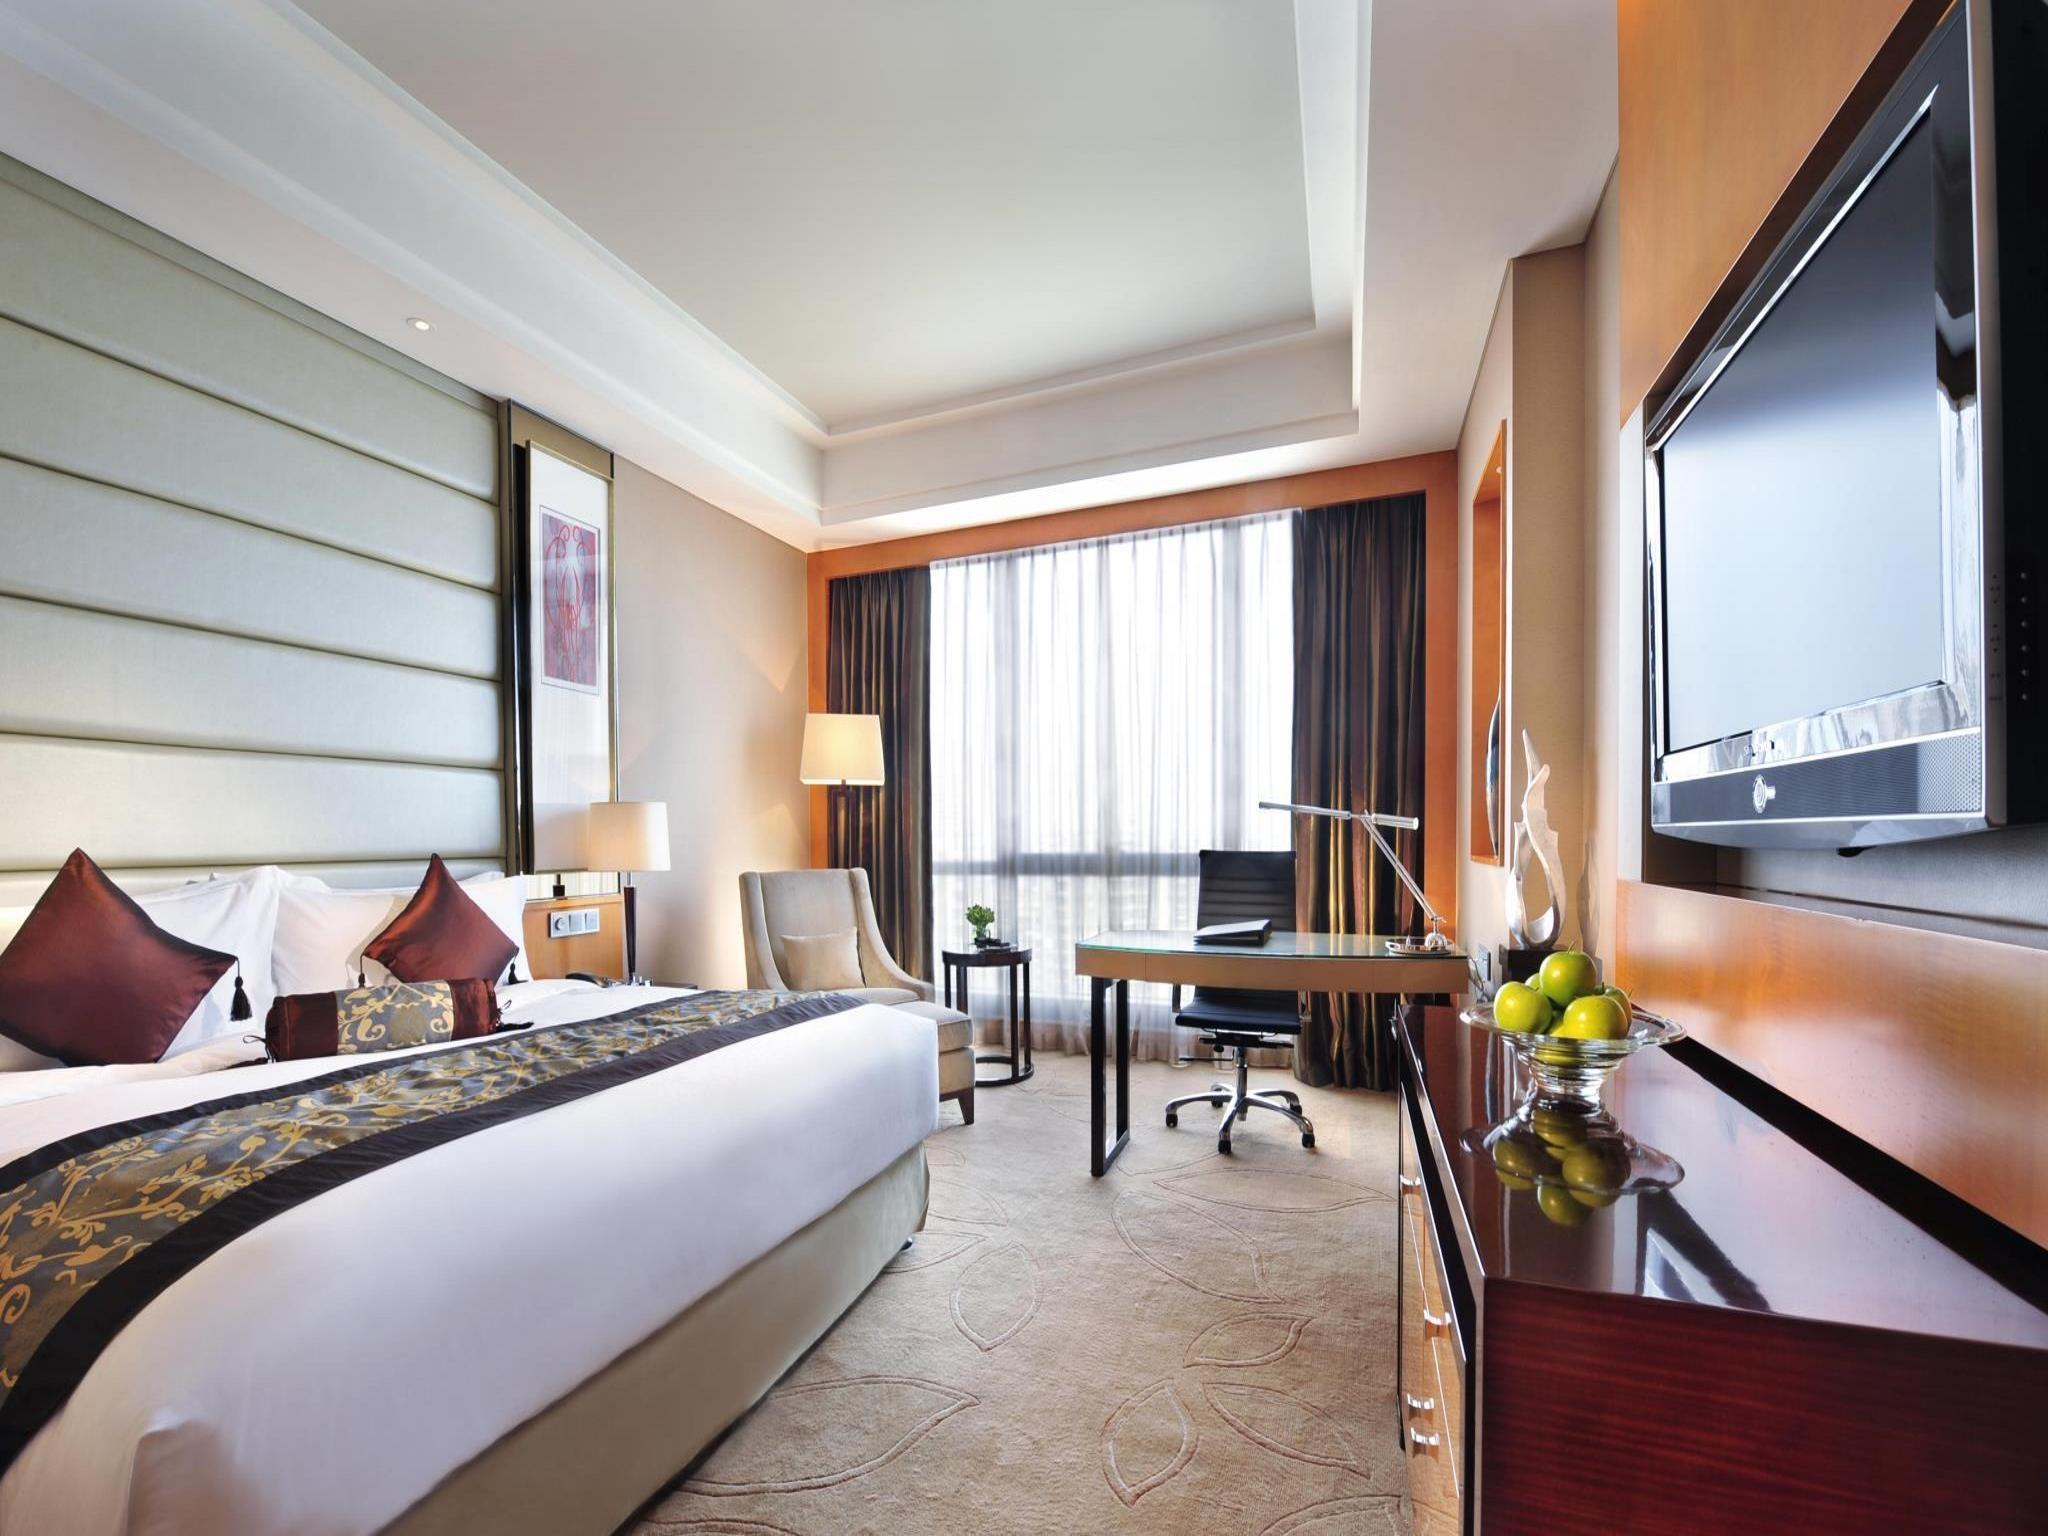 Luxury Club Sofitel 1 kuningavoodi (Luxury Club Sofitel 1 King Size Bed)